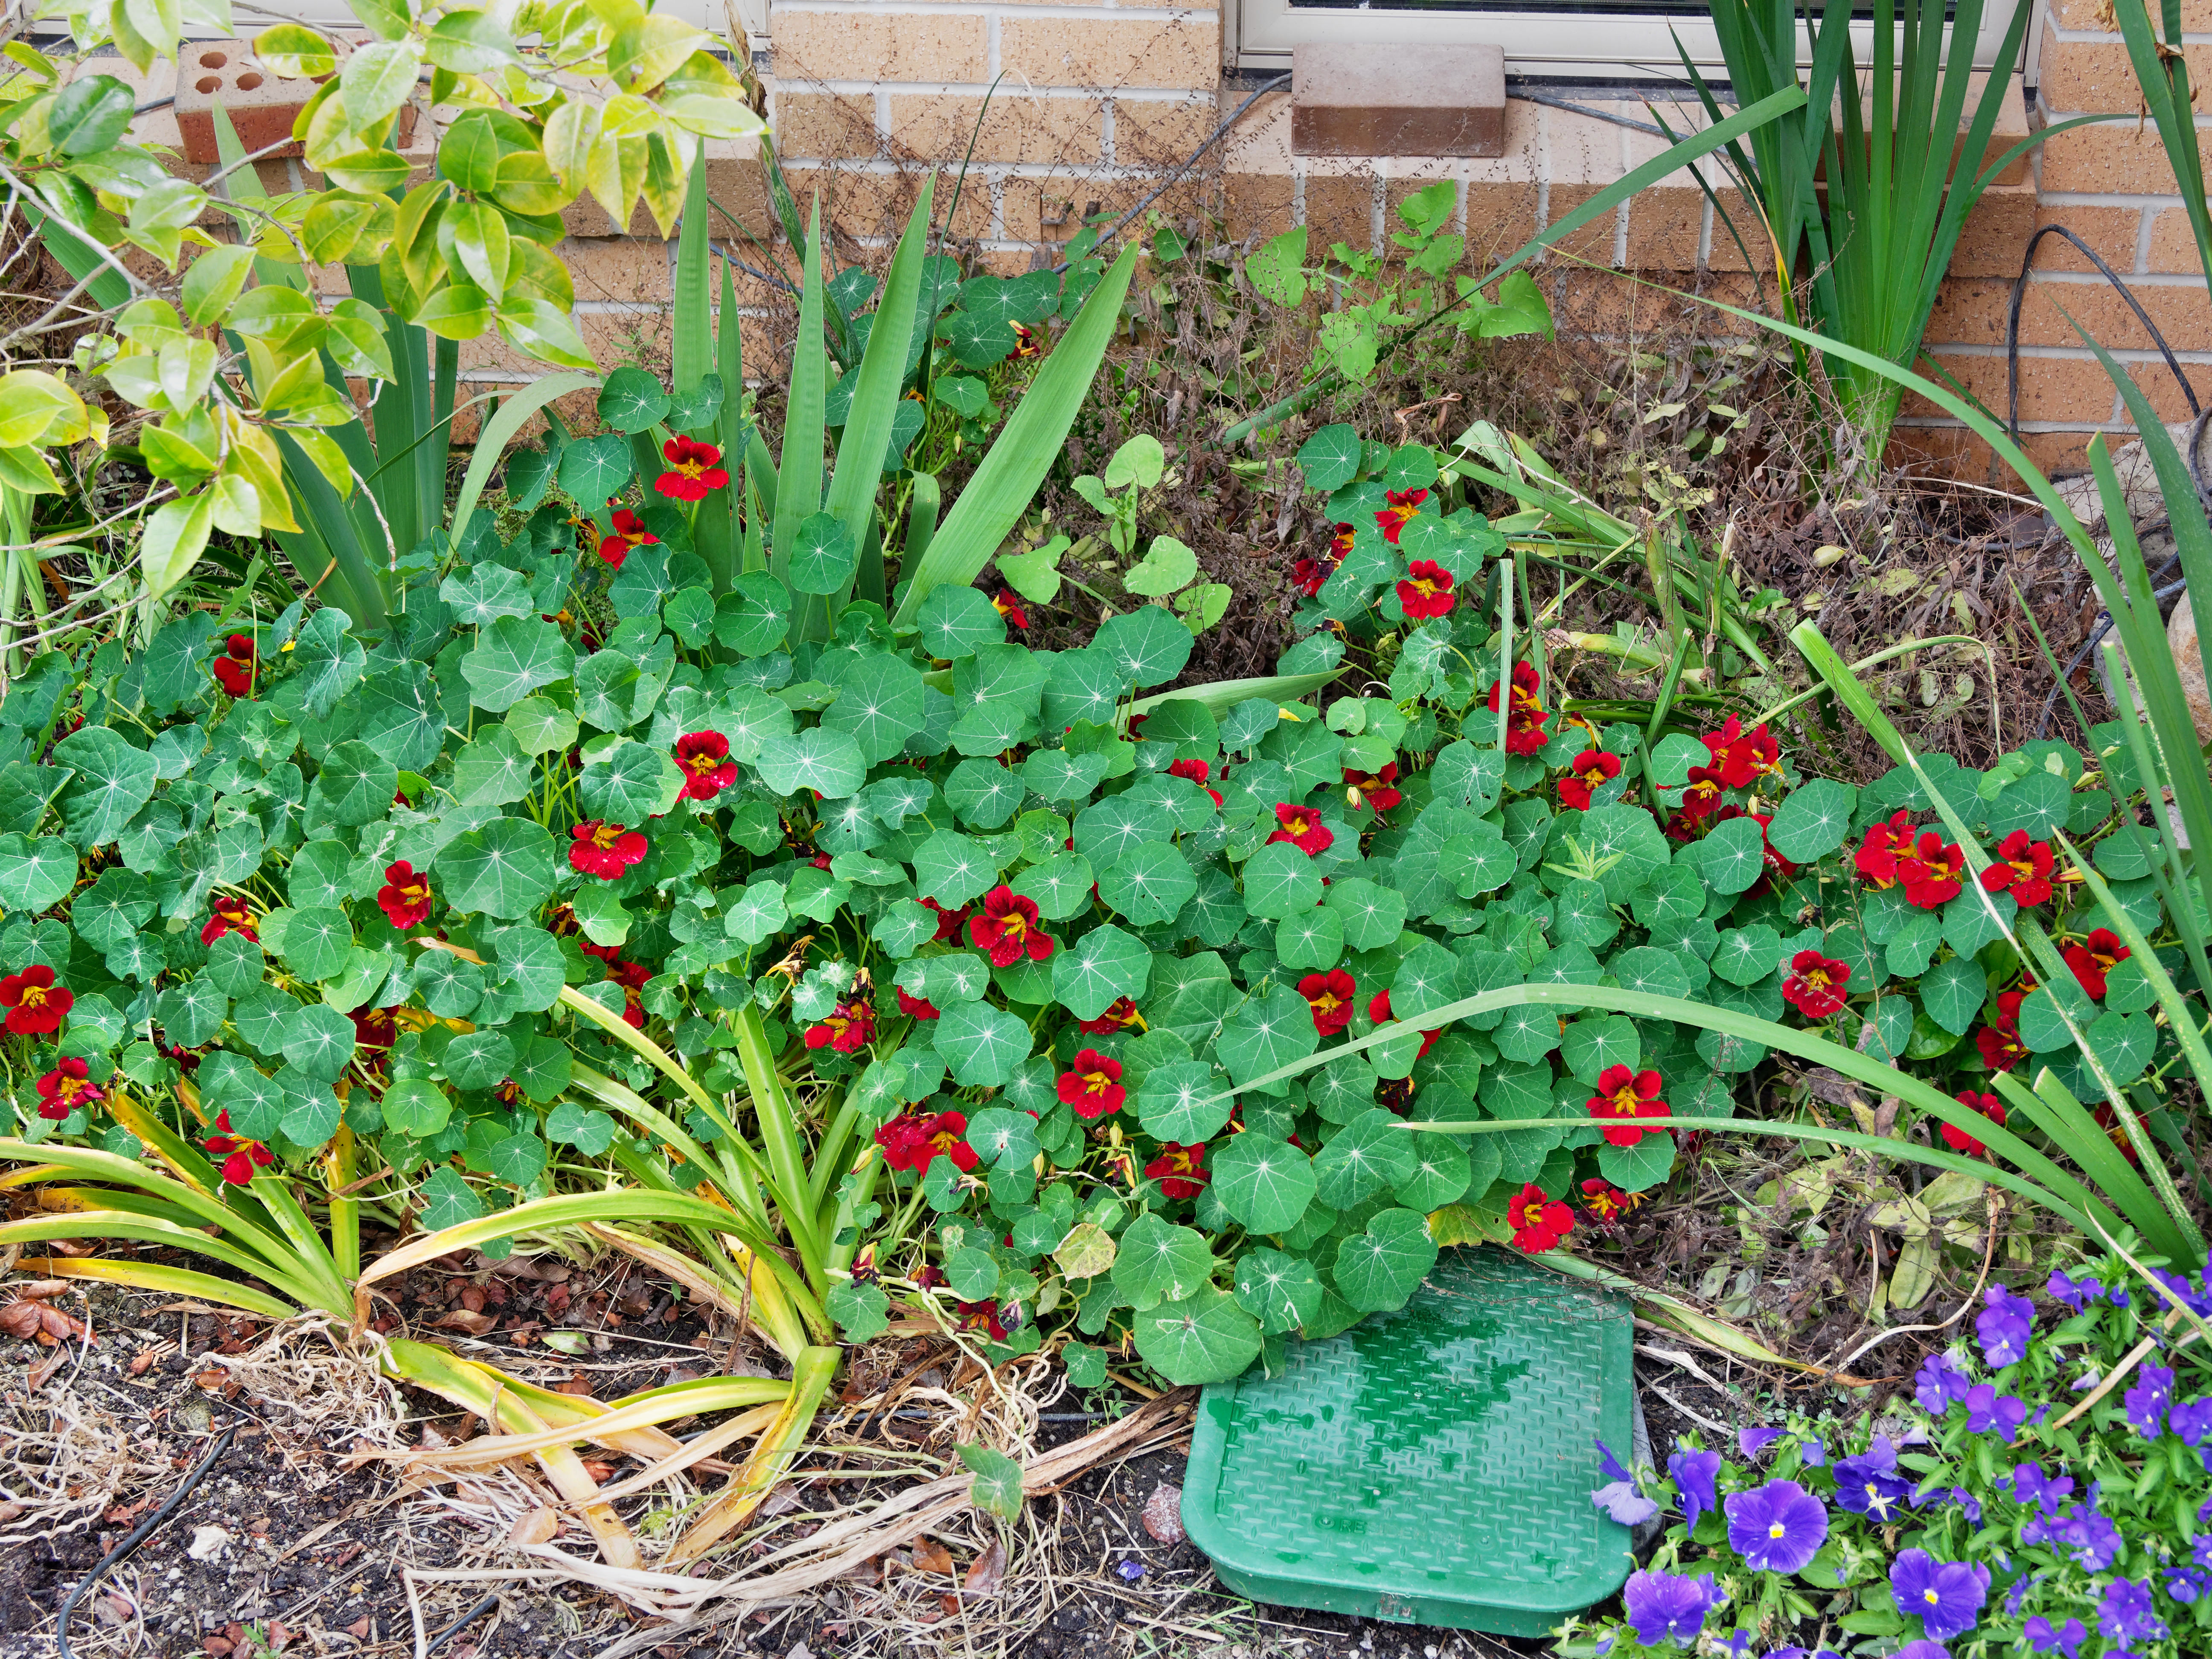 This should be Tropaeolum-1.jpeg.  Is it missing?